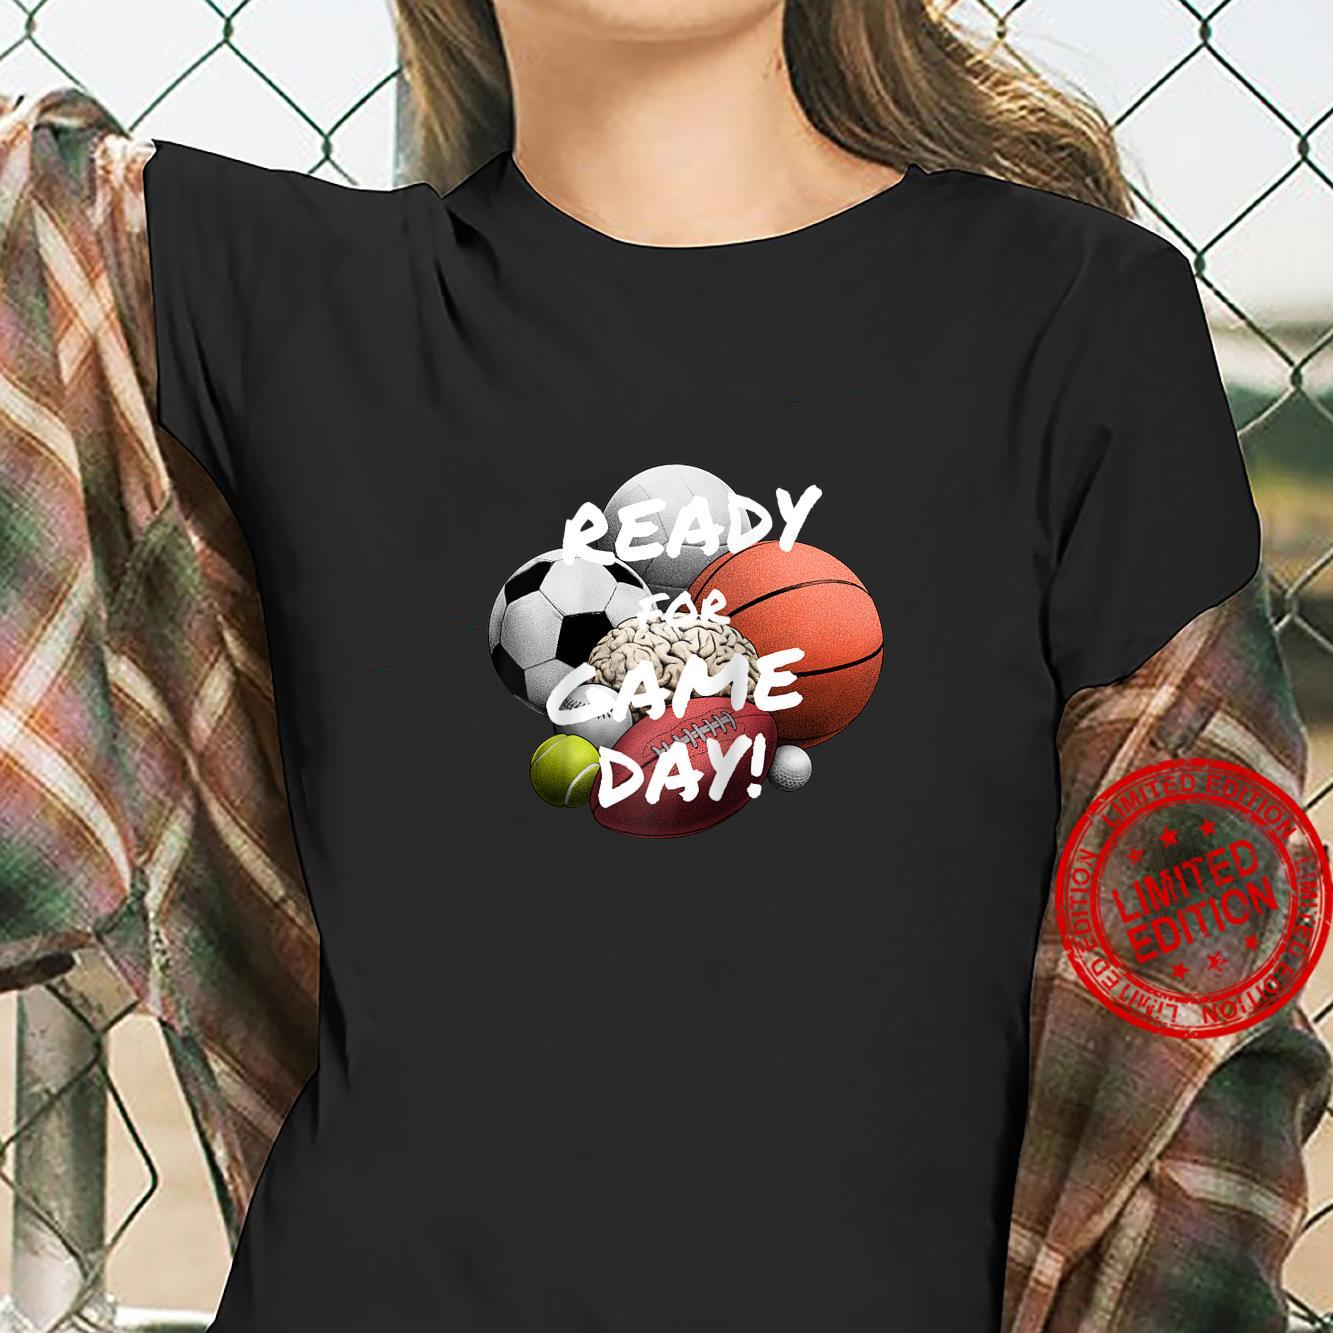 Ready For Game Day's's Boy's Girls' Sports Shirt ladies tee